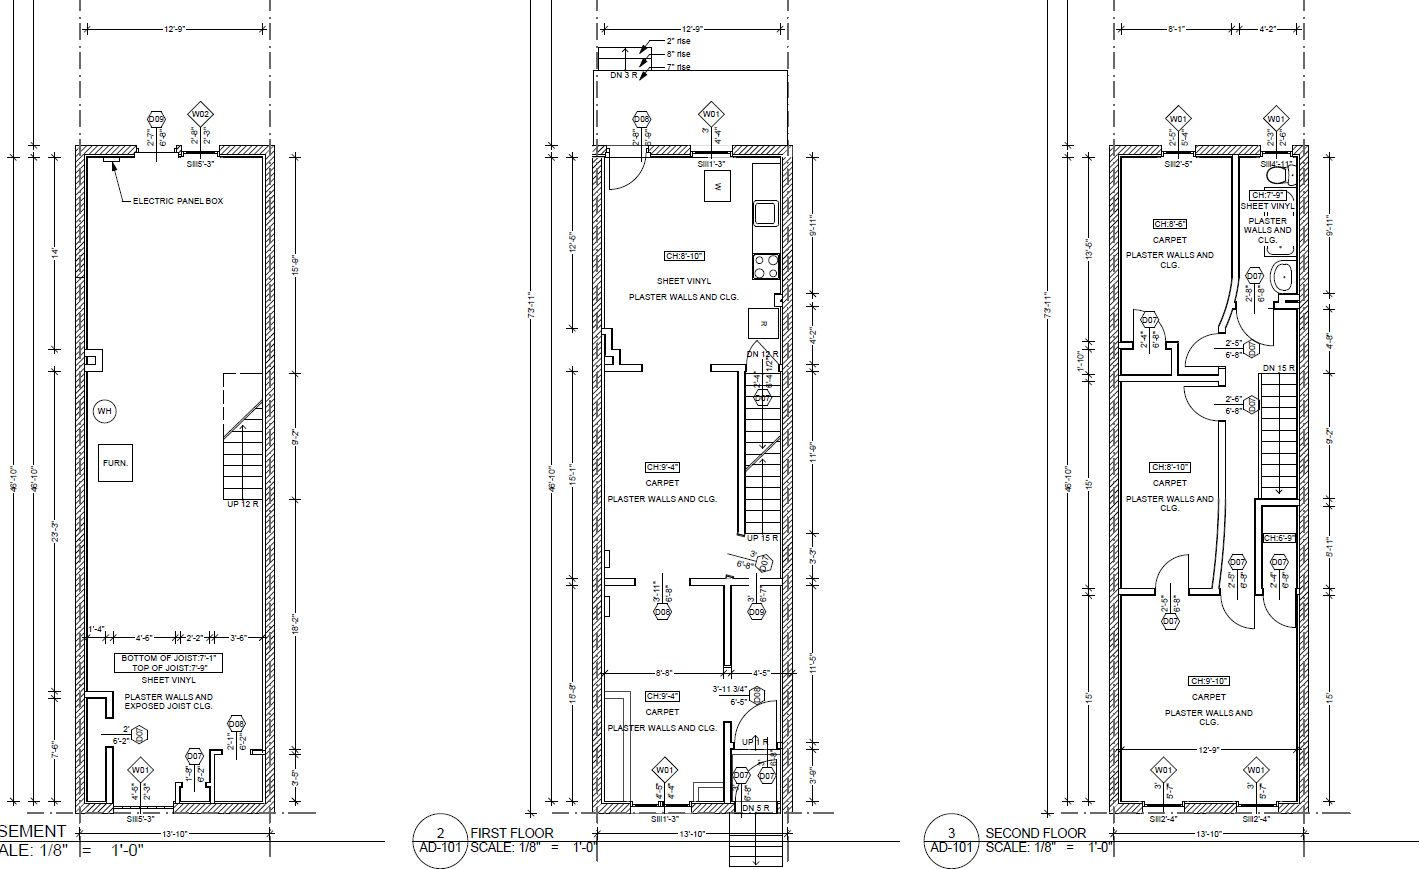 Twostory 1420 869 narrow house plans for Narrow apartment plans